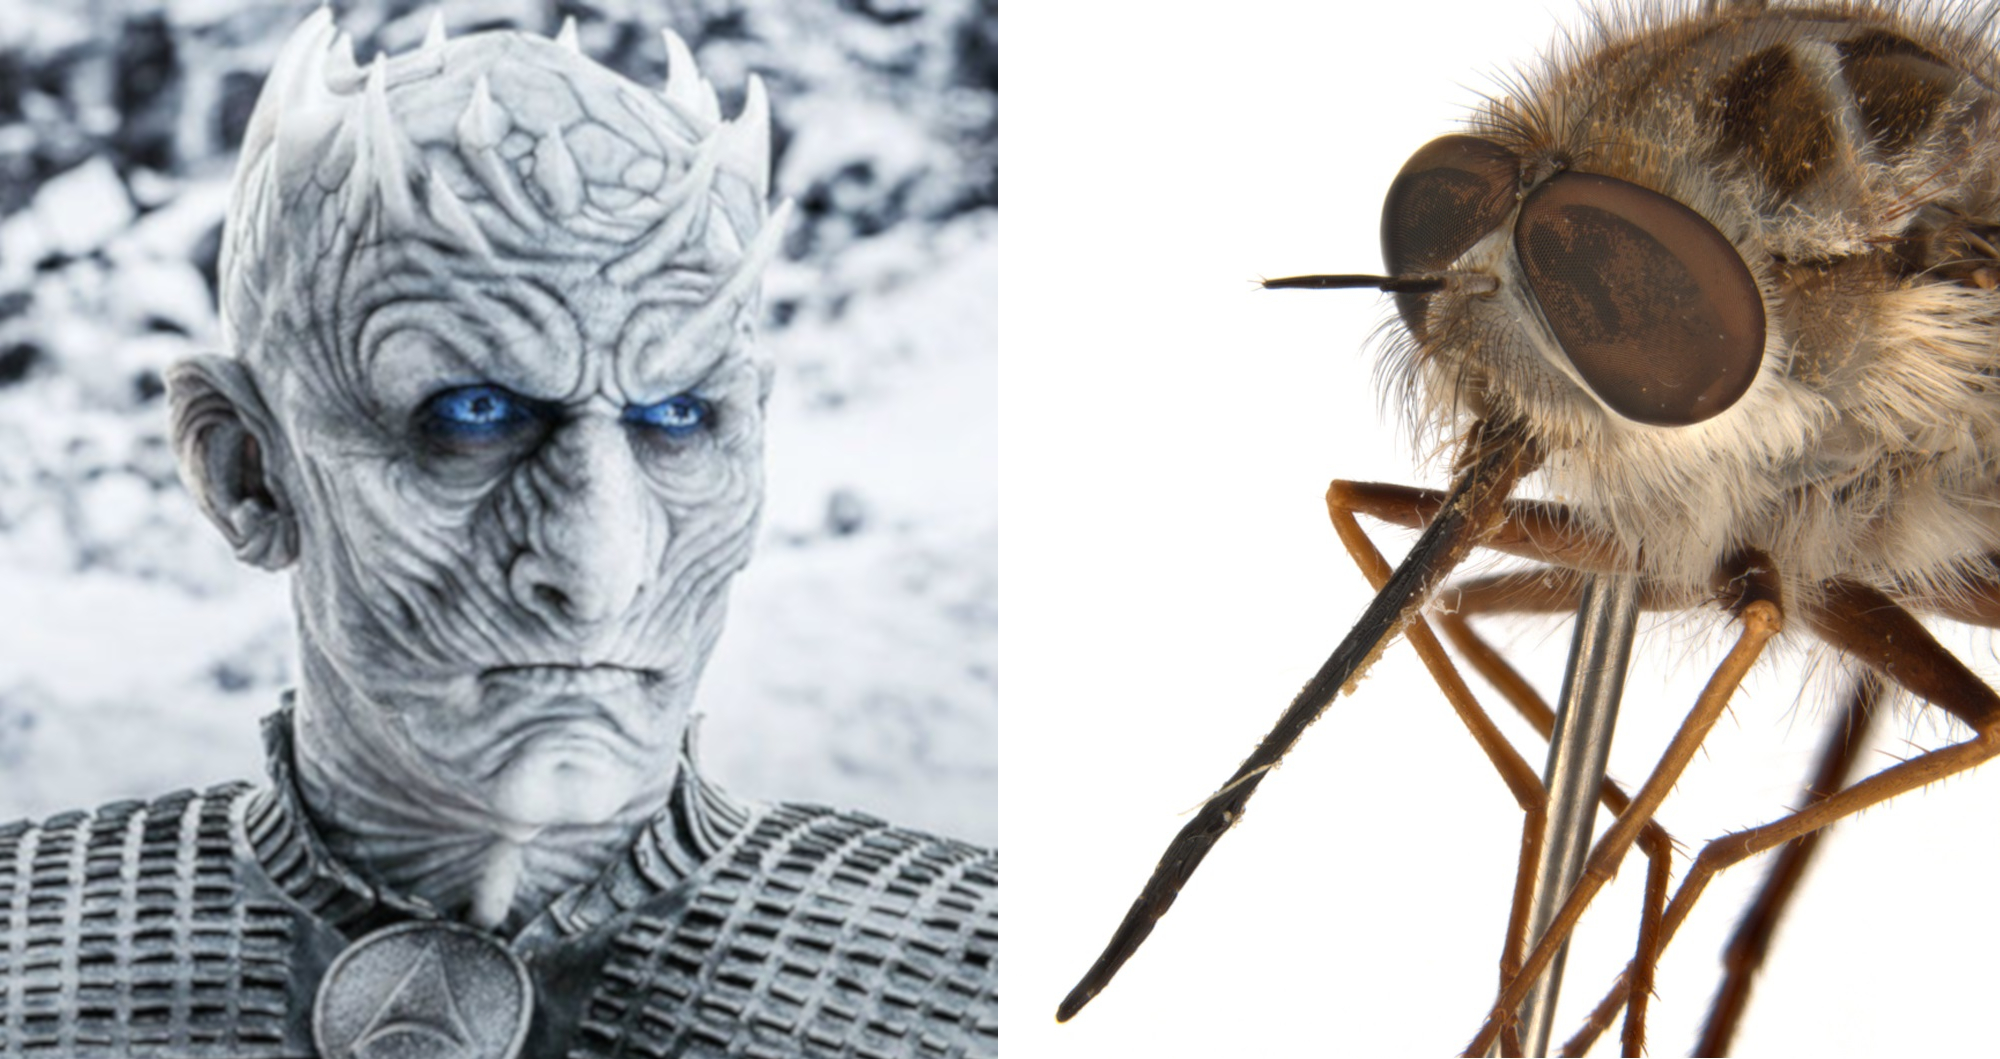 Close up photo of a fly's head showing large eyes and spine-like hairs. Next to a picture of the Night King from Game of Thrones